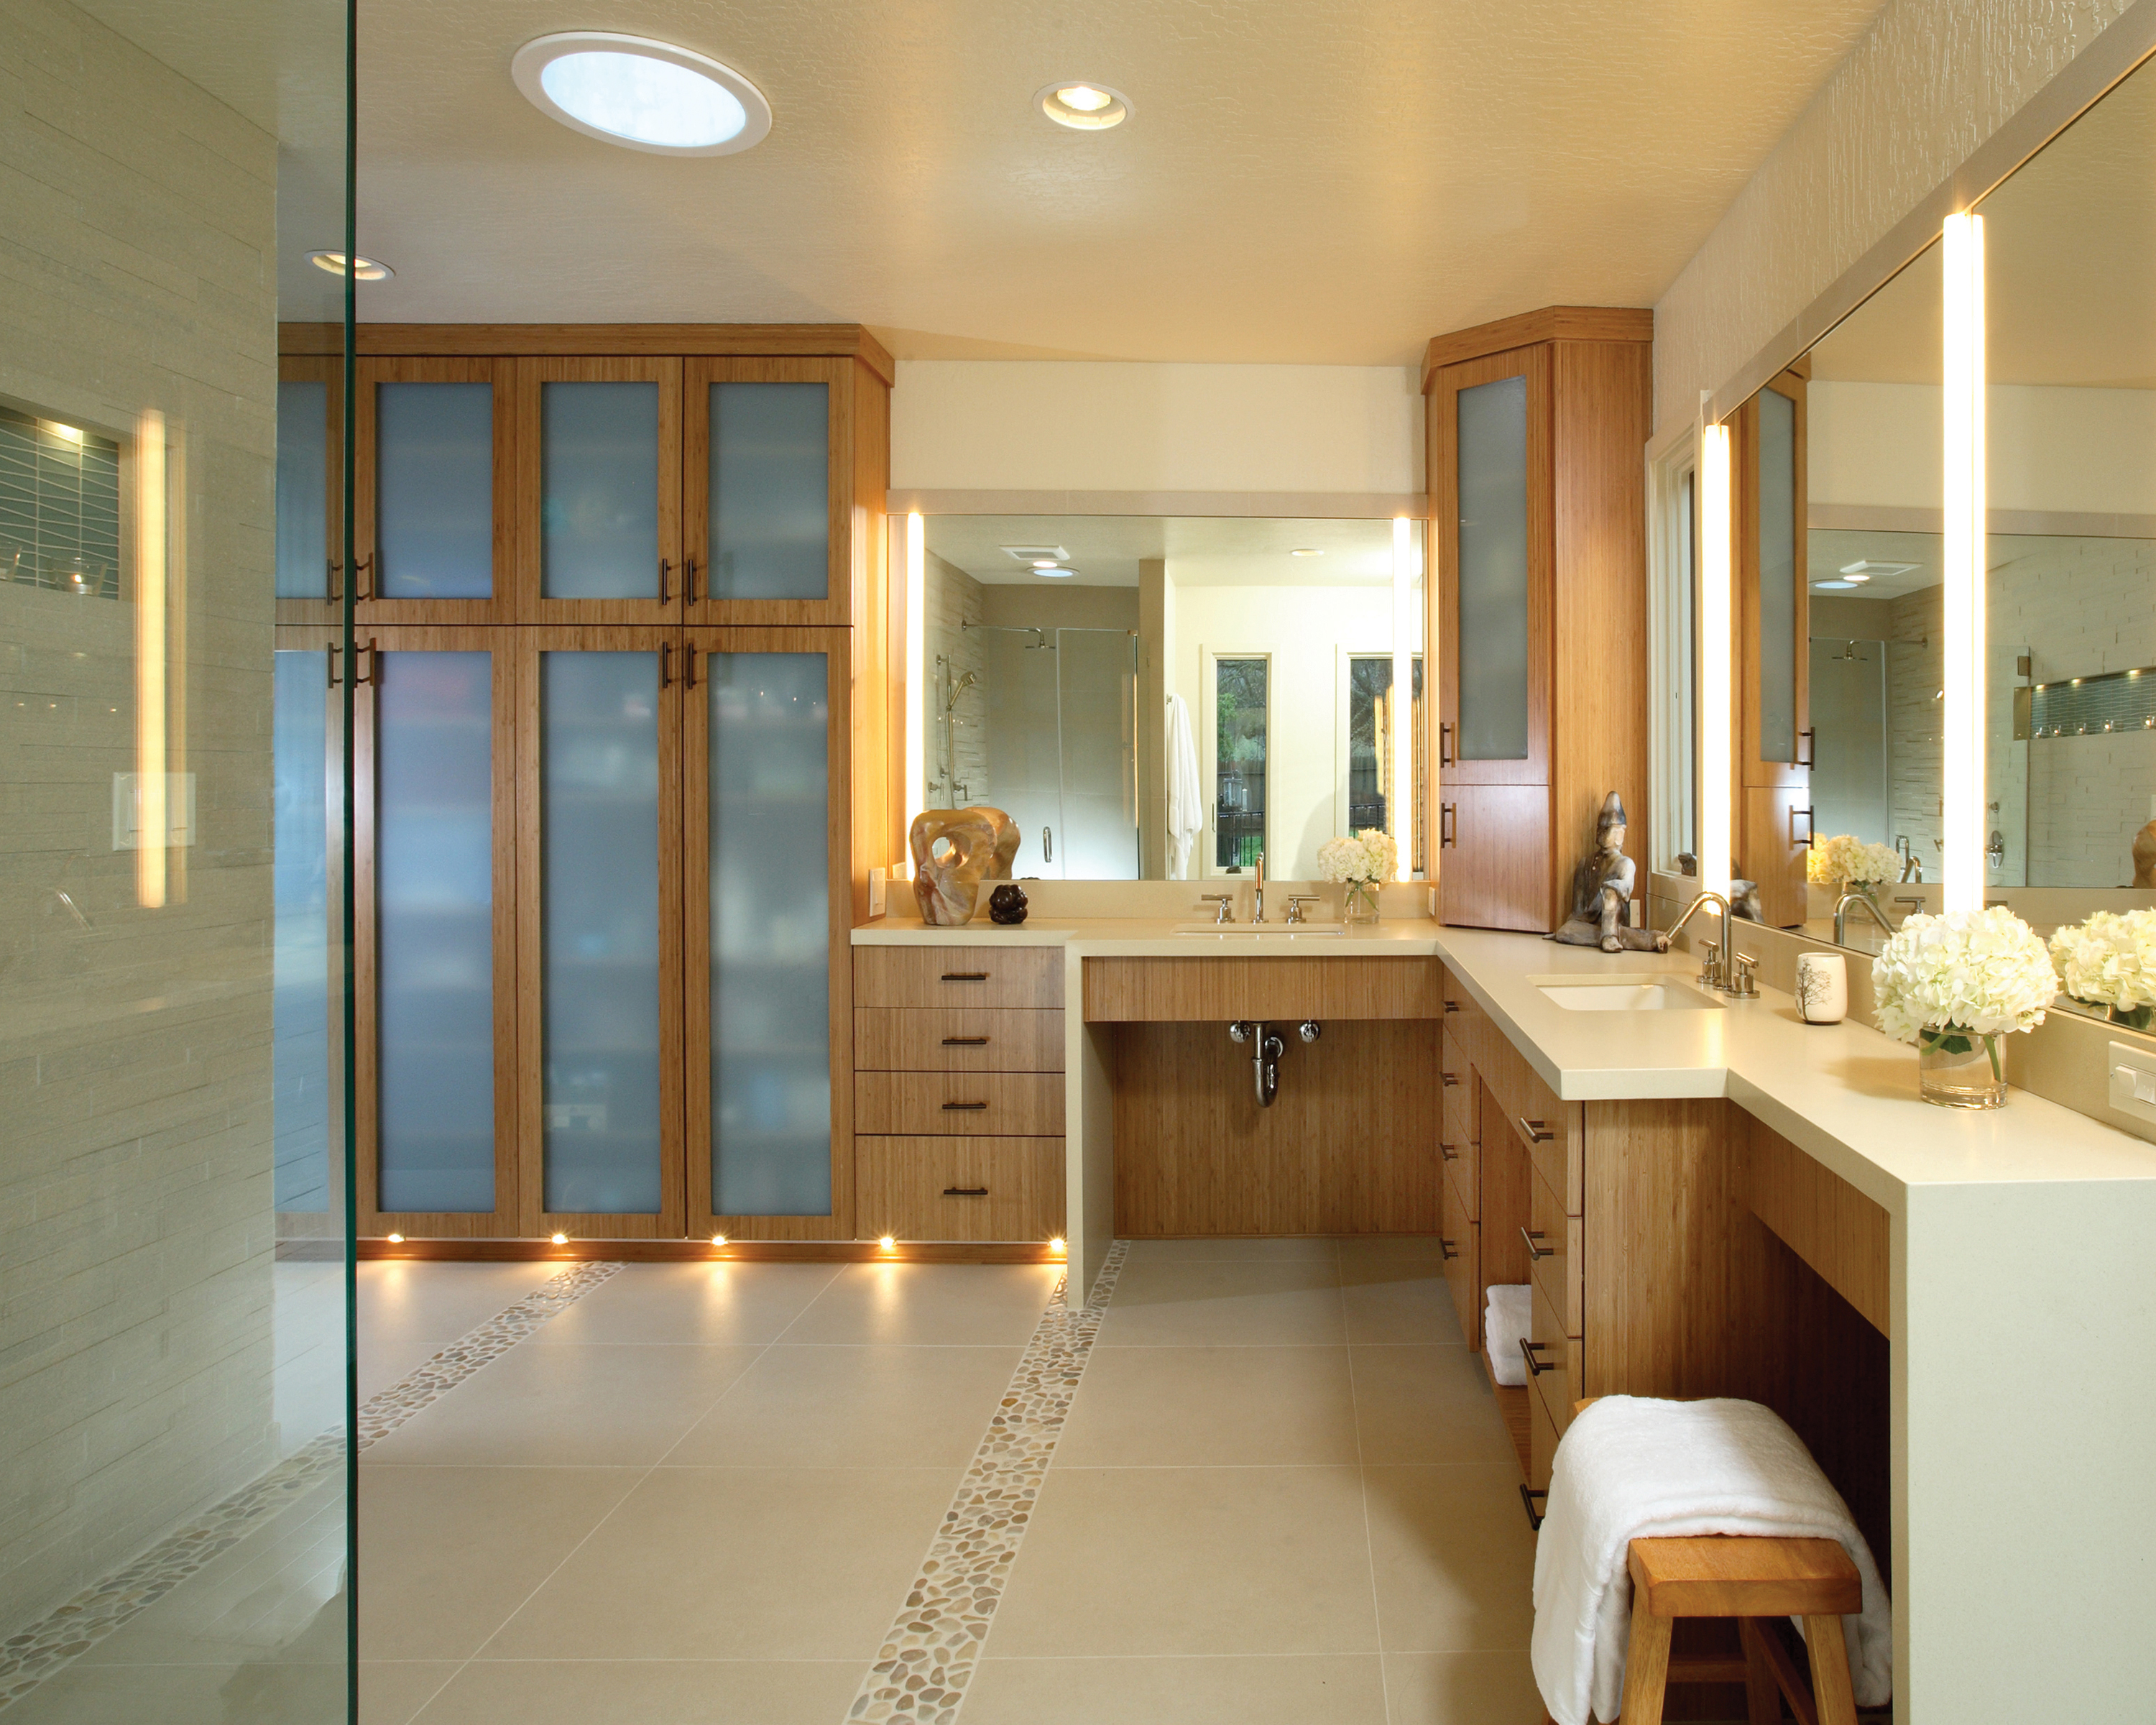 K&B Design: Aging-in-place bathrooms  Pro Remodeler